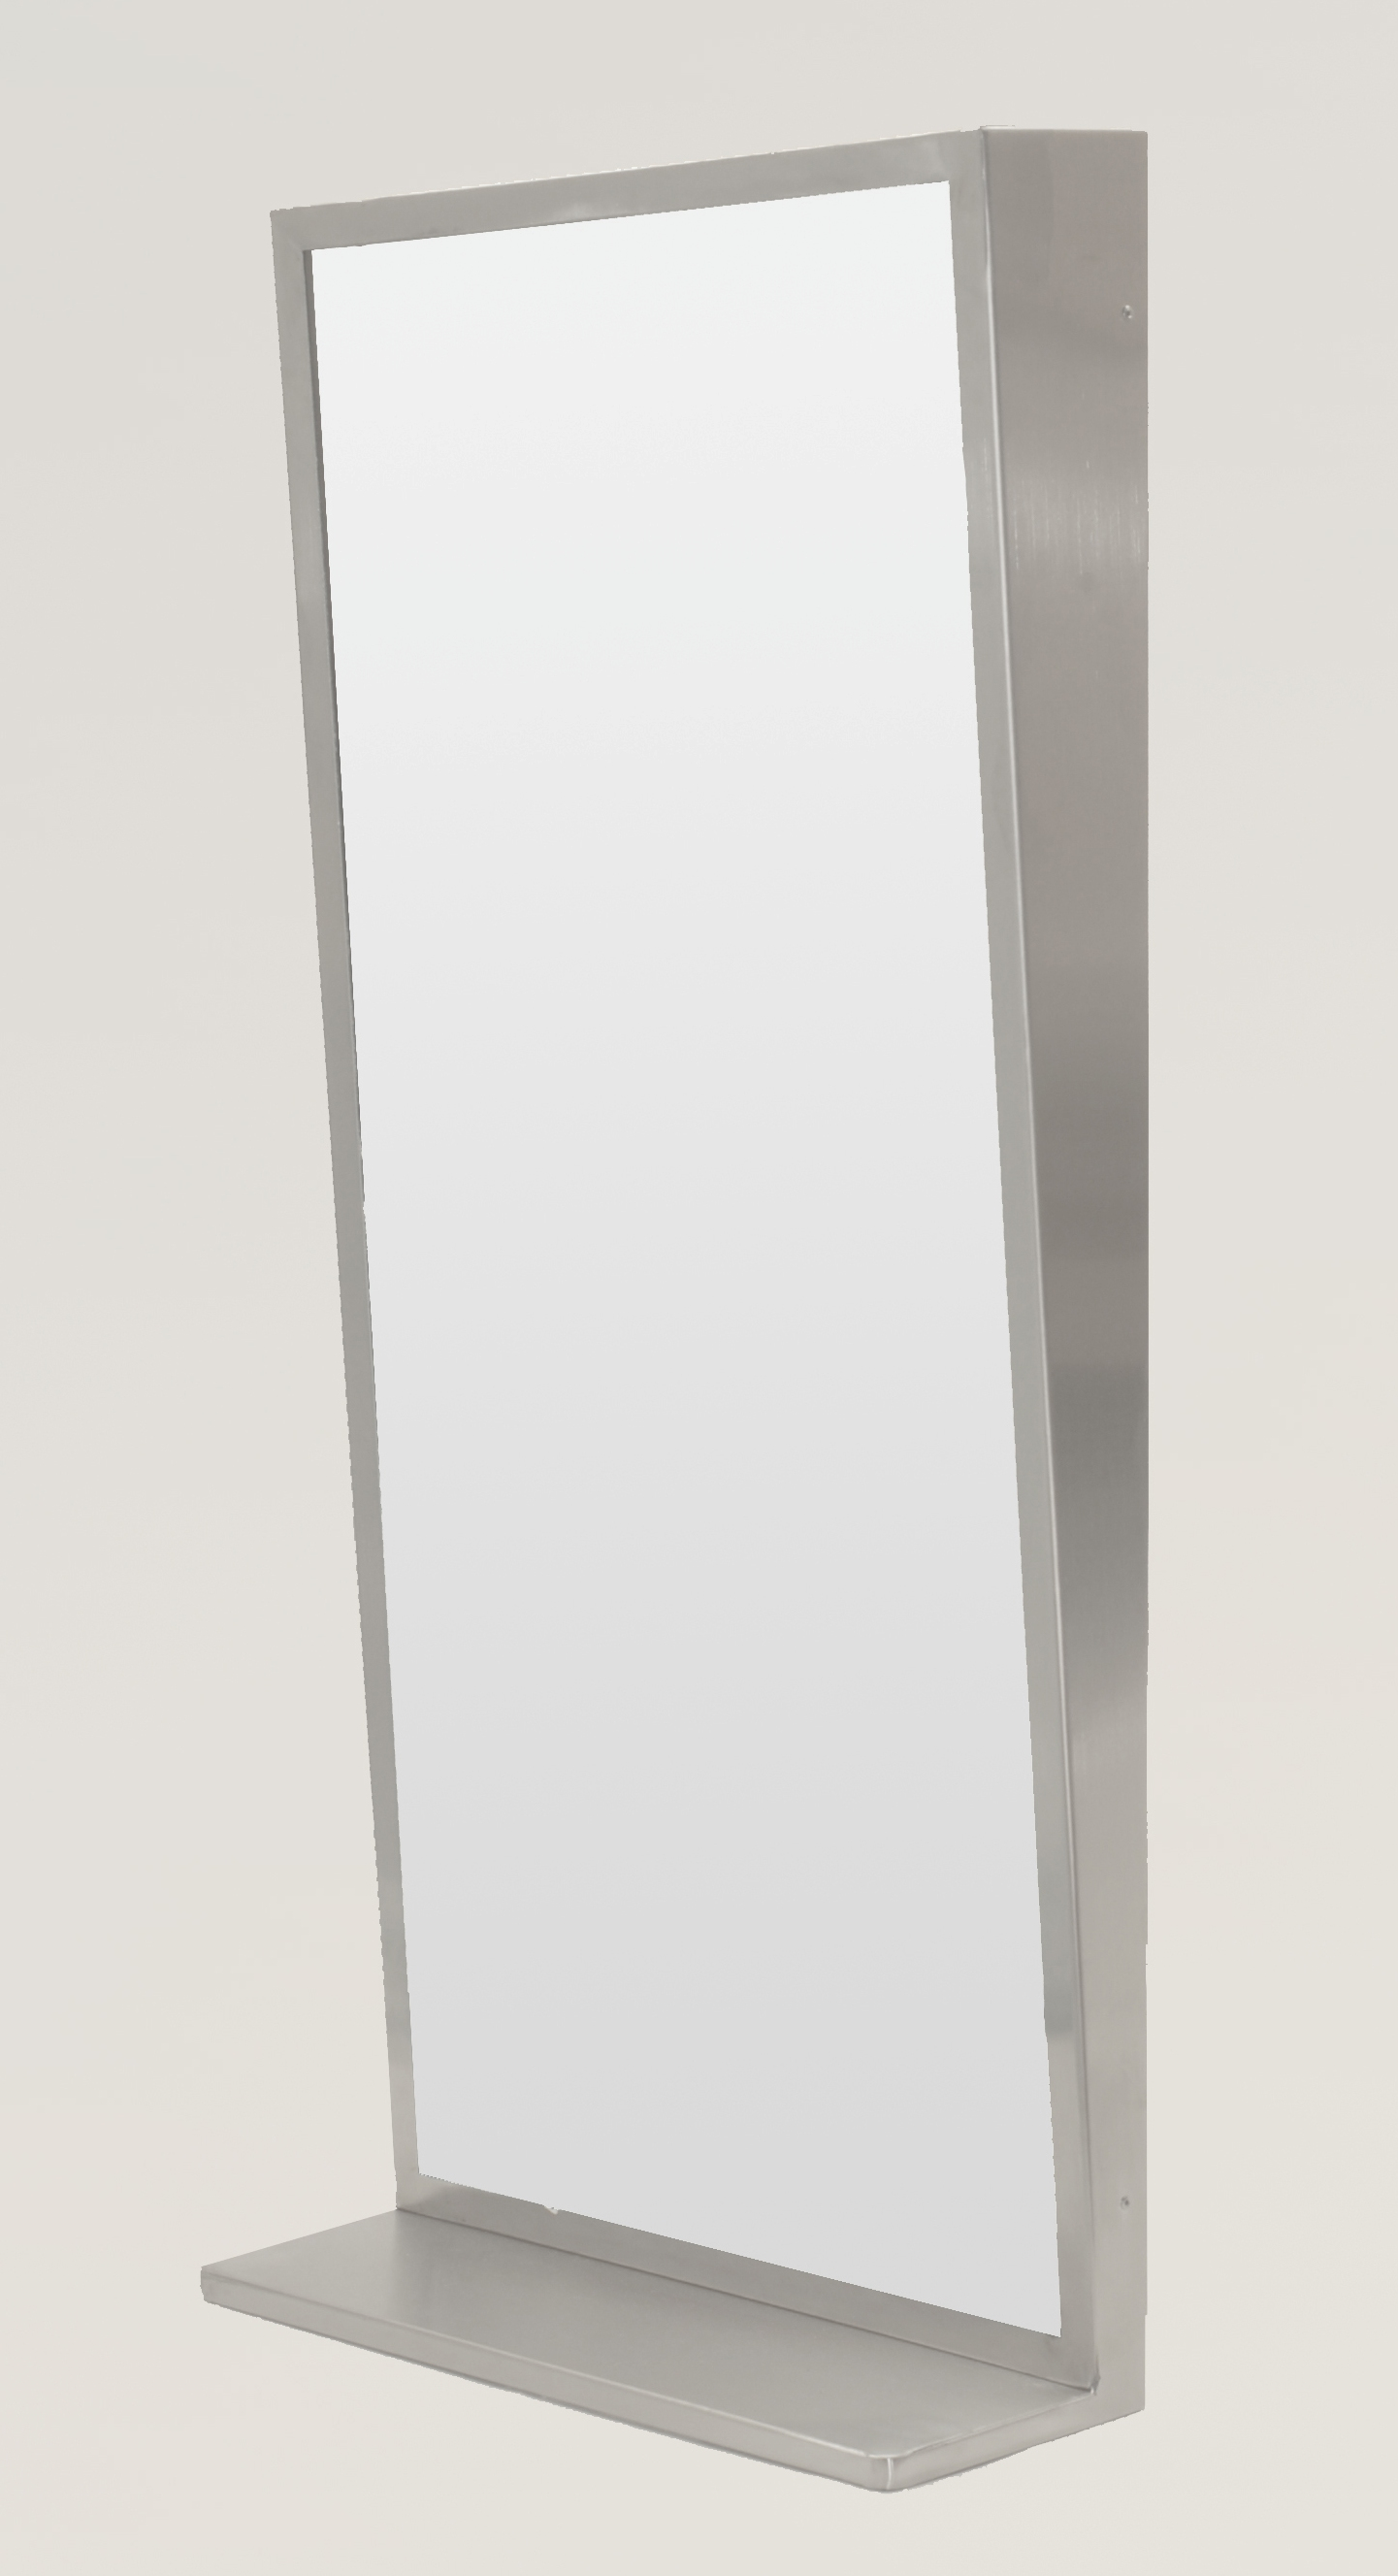 Tilt Mirror with Shelf 450x990